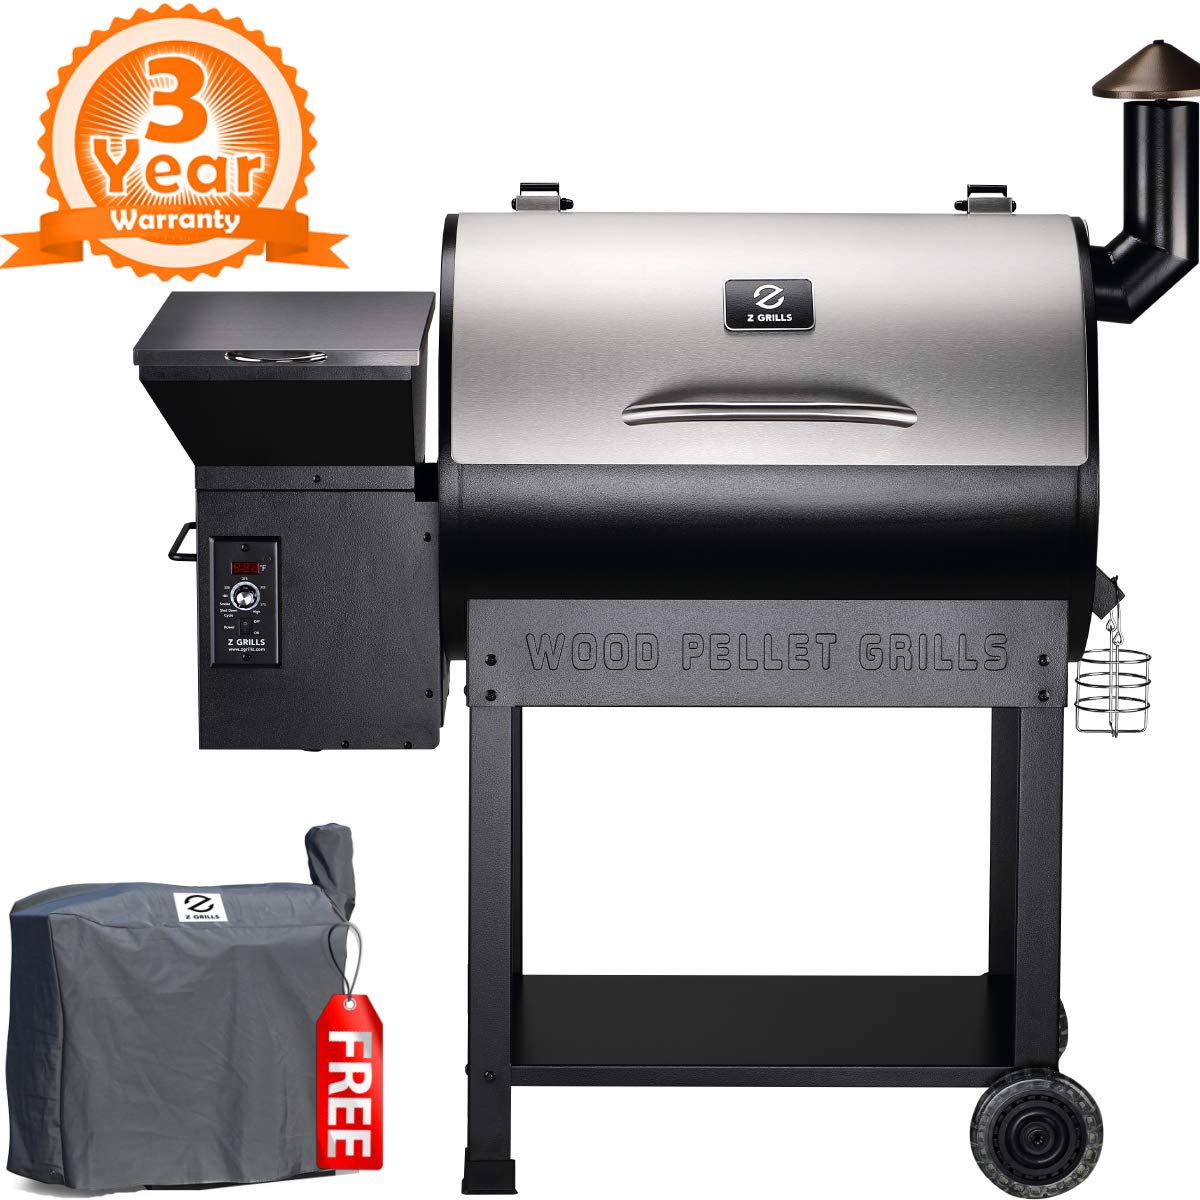 Z GRILLS ZPG-7002E 2019 New Model Wood Pellet Grill & Smoker, 8 in 1 BBQ Grill Auto Temperature Control, 700 sq inch Cooking Area, Silver Cover Included by Z GRILLS